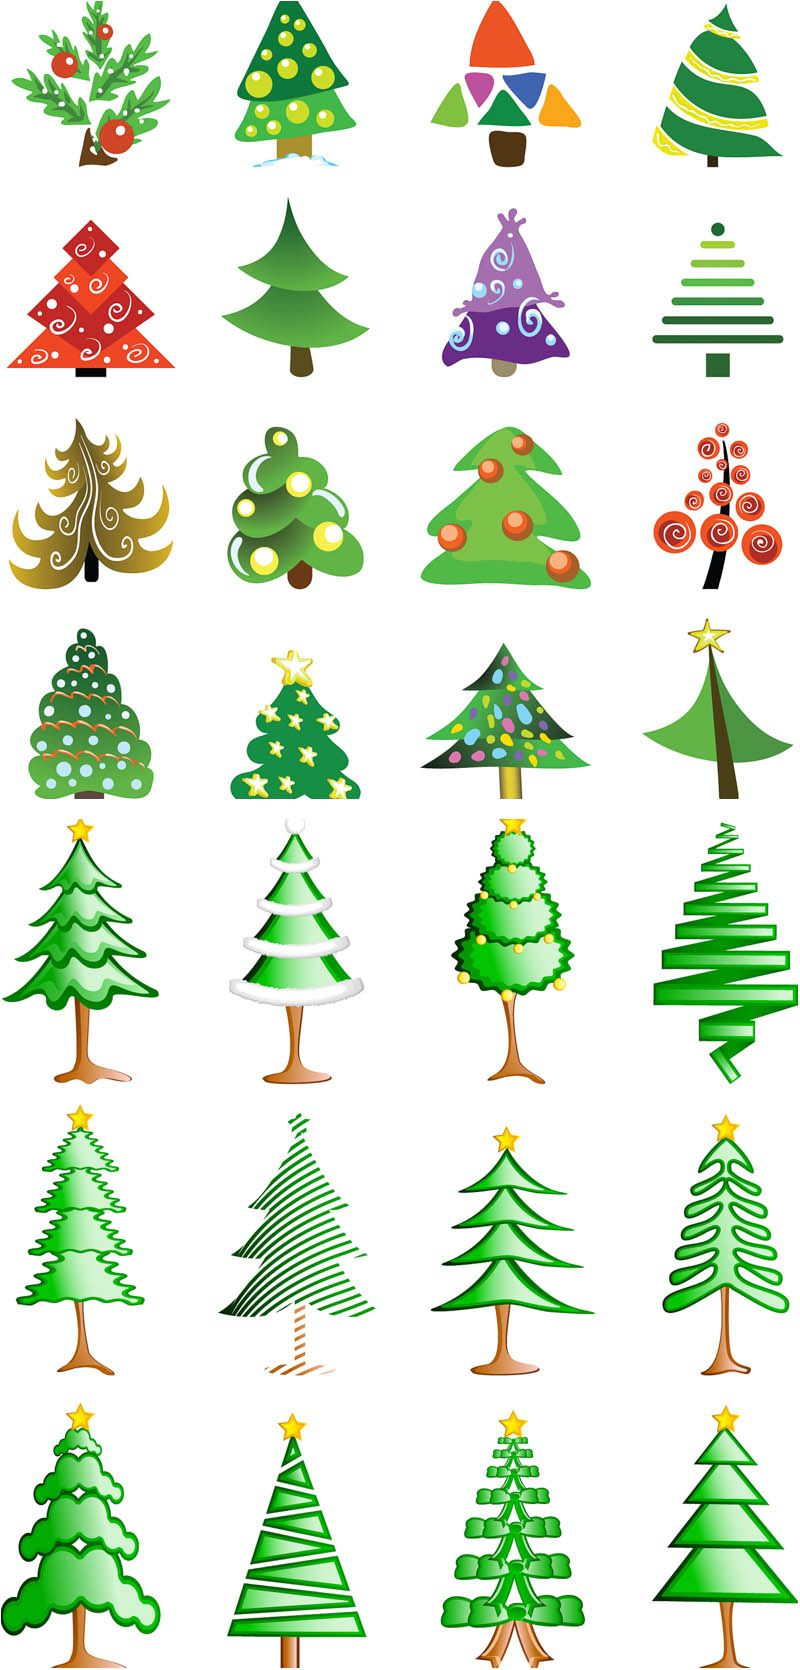 Christmas Tree Logotypes Vector Christmas Art Christmas Drawing Christmas Crafts